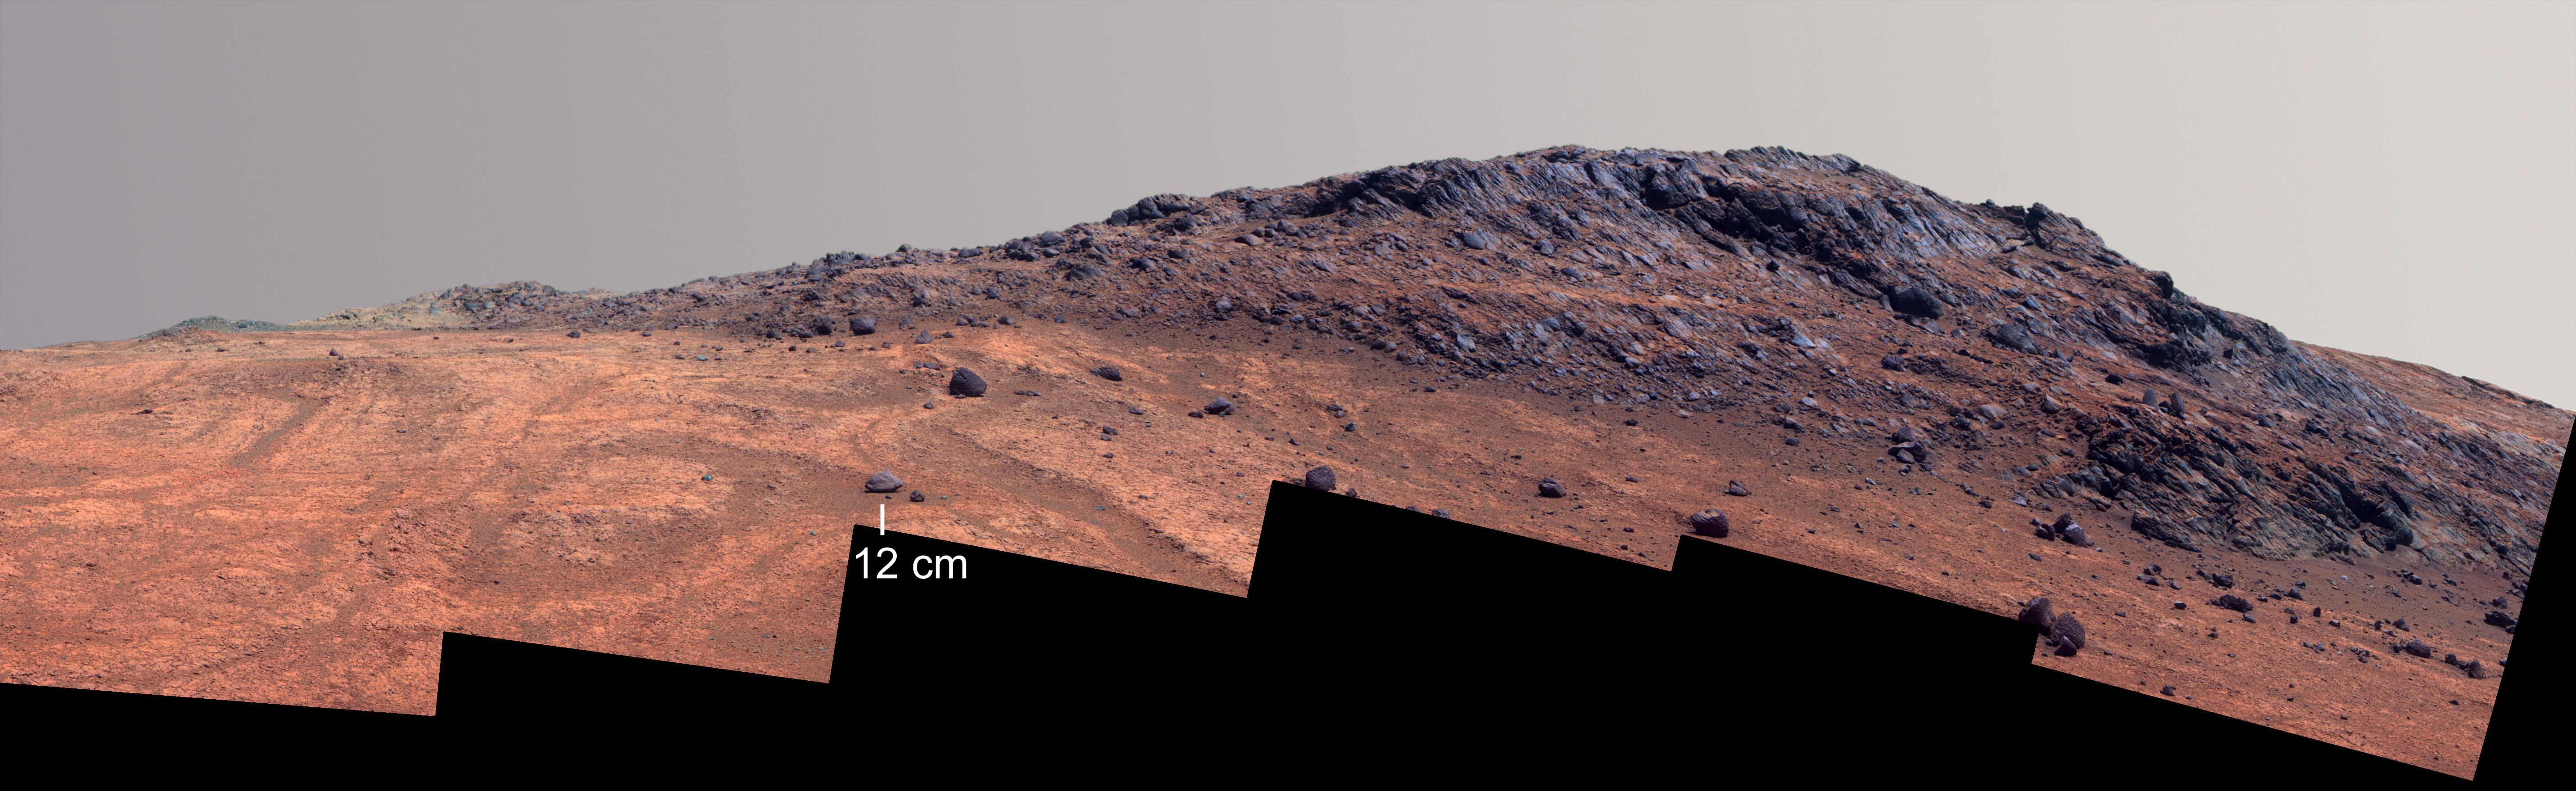 mars-opportunity-rover-marathon-valley-pancam-hills-sol4108_l257f-pia19820-full rens